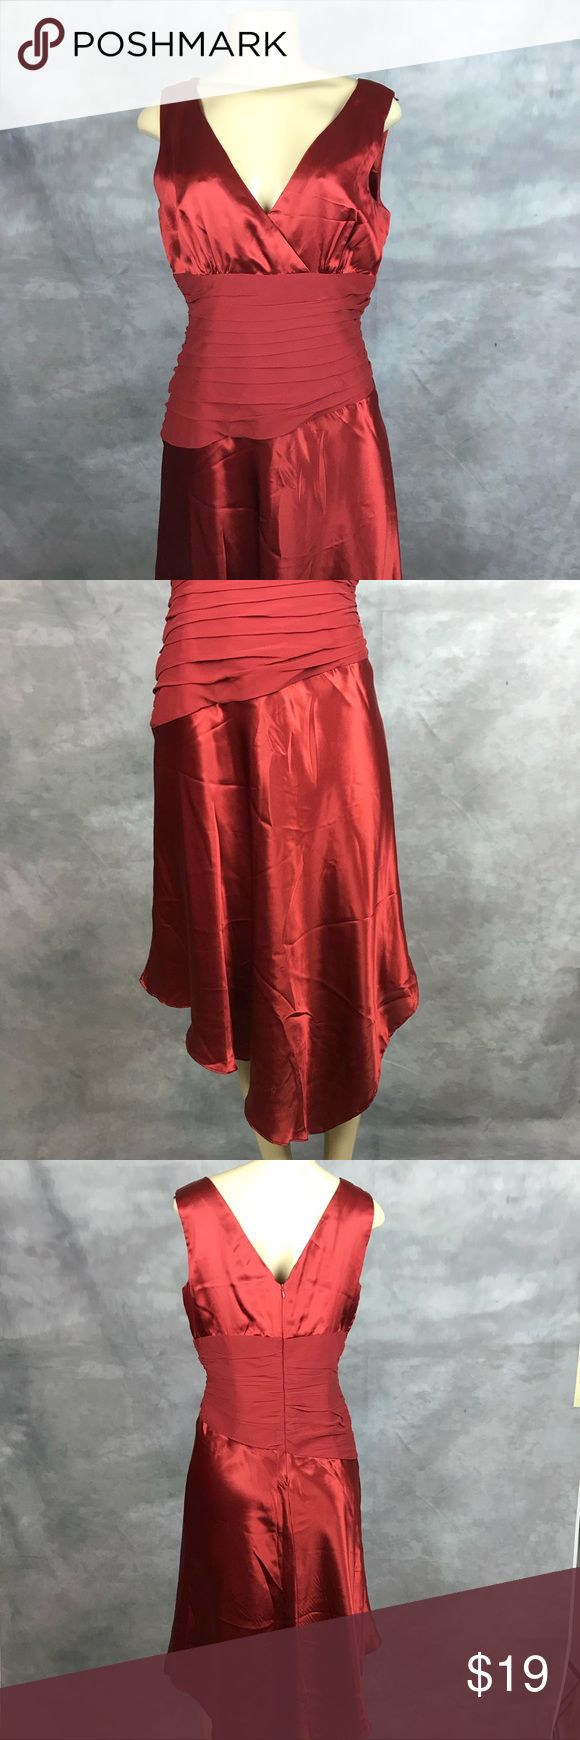 Donna Ricco Evening Dress Need to be dried cleaned cuz never did after wearing it has small wear near armpit See pic Donna Ricco Dresses Asymmetrical